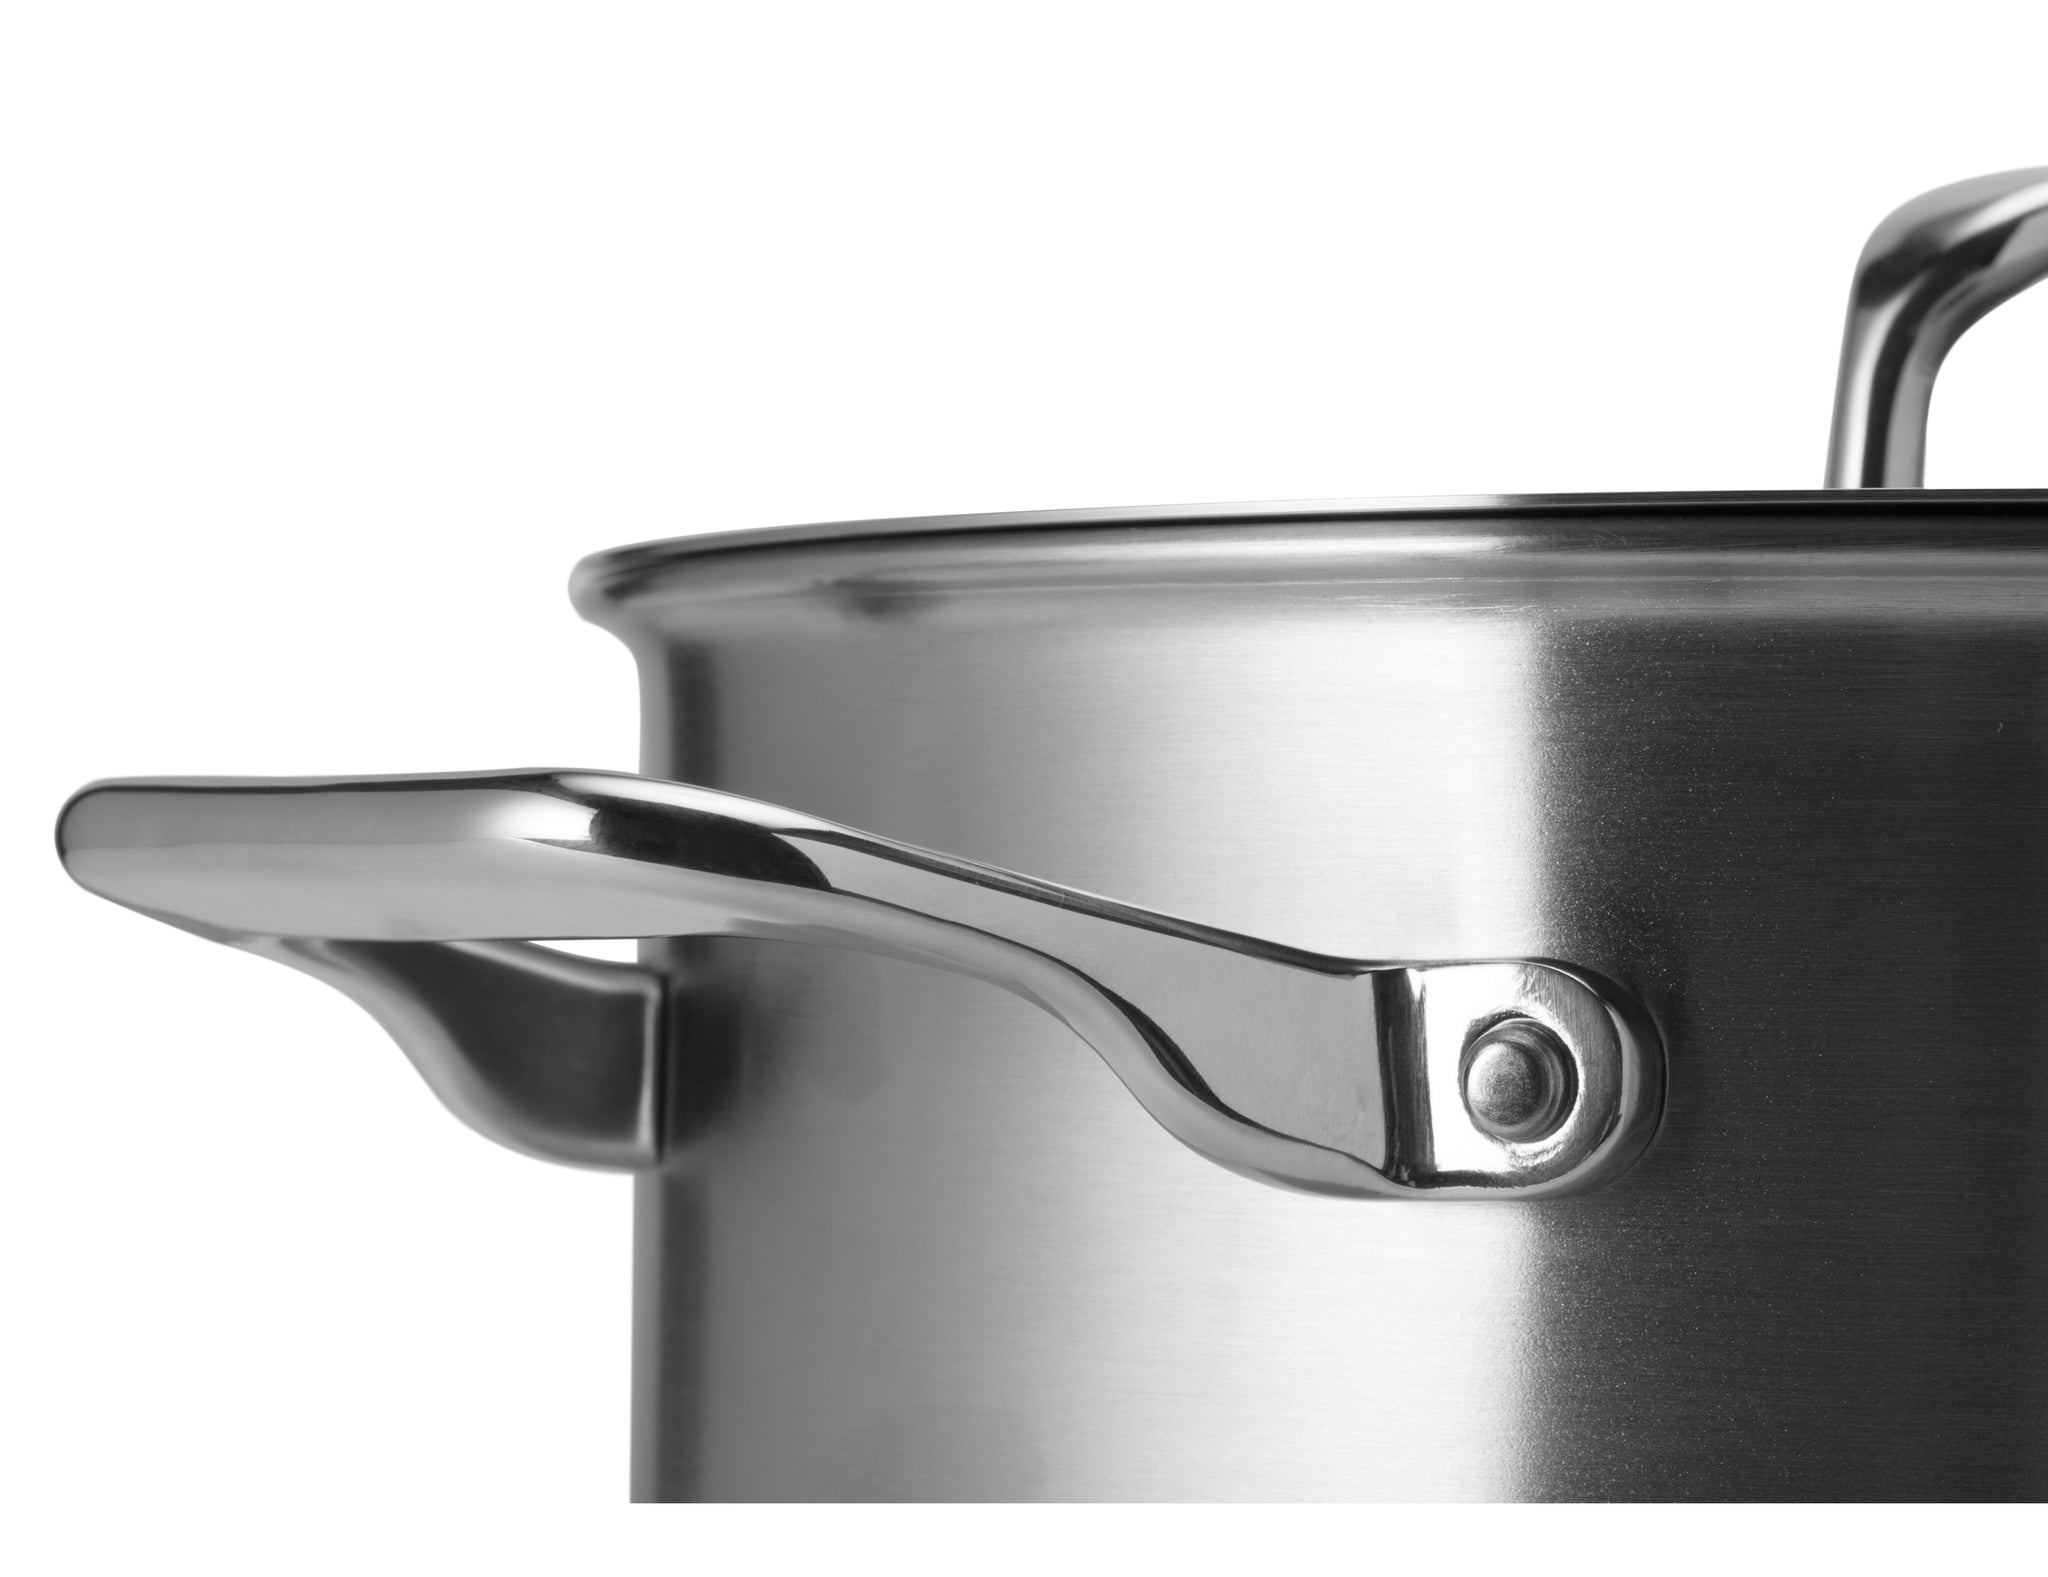 The Misen 3QT Saute also features an additional helper handle that makes this pan even easier to move around.